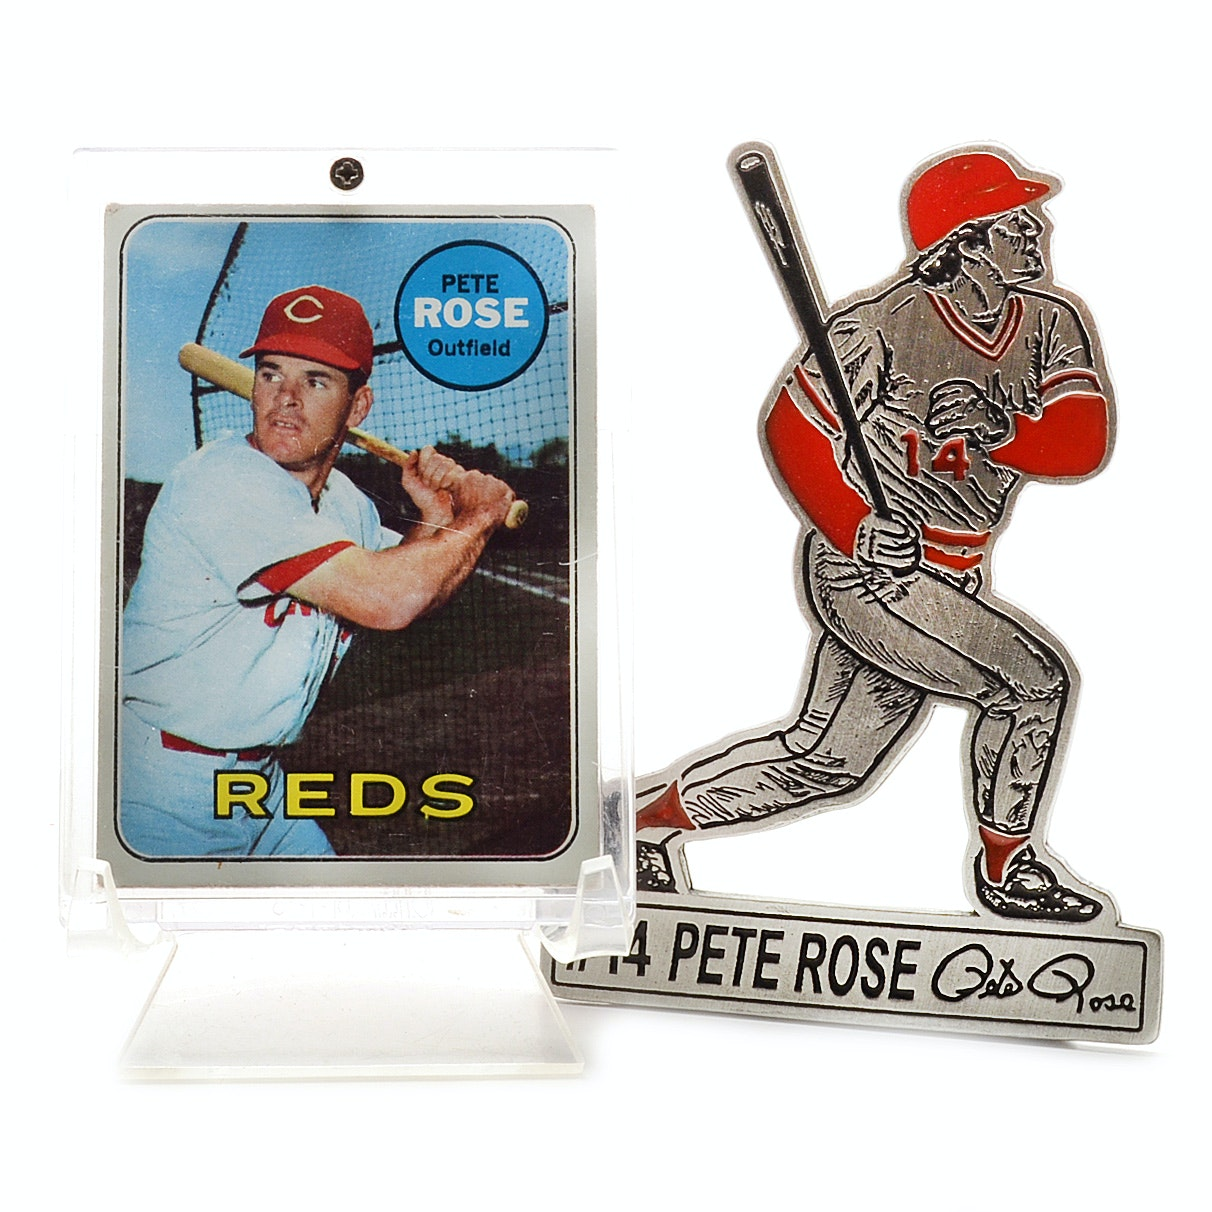 1969 Pete Rose Baseball Card and Pewter Statue